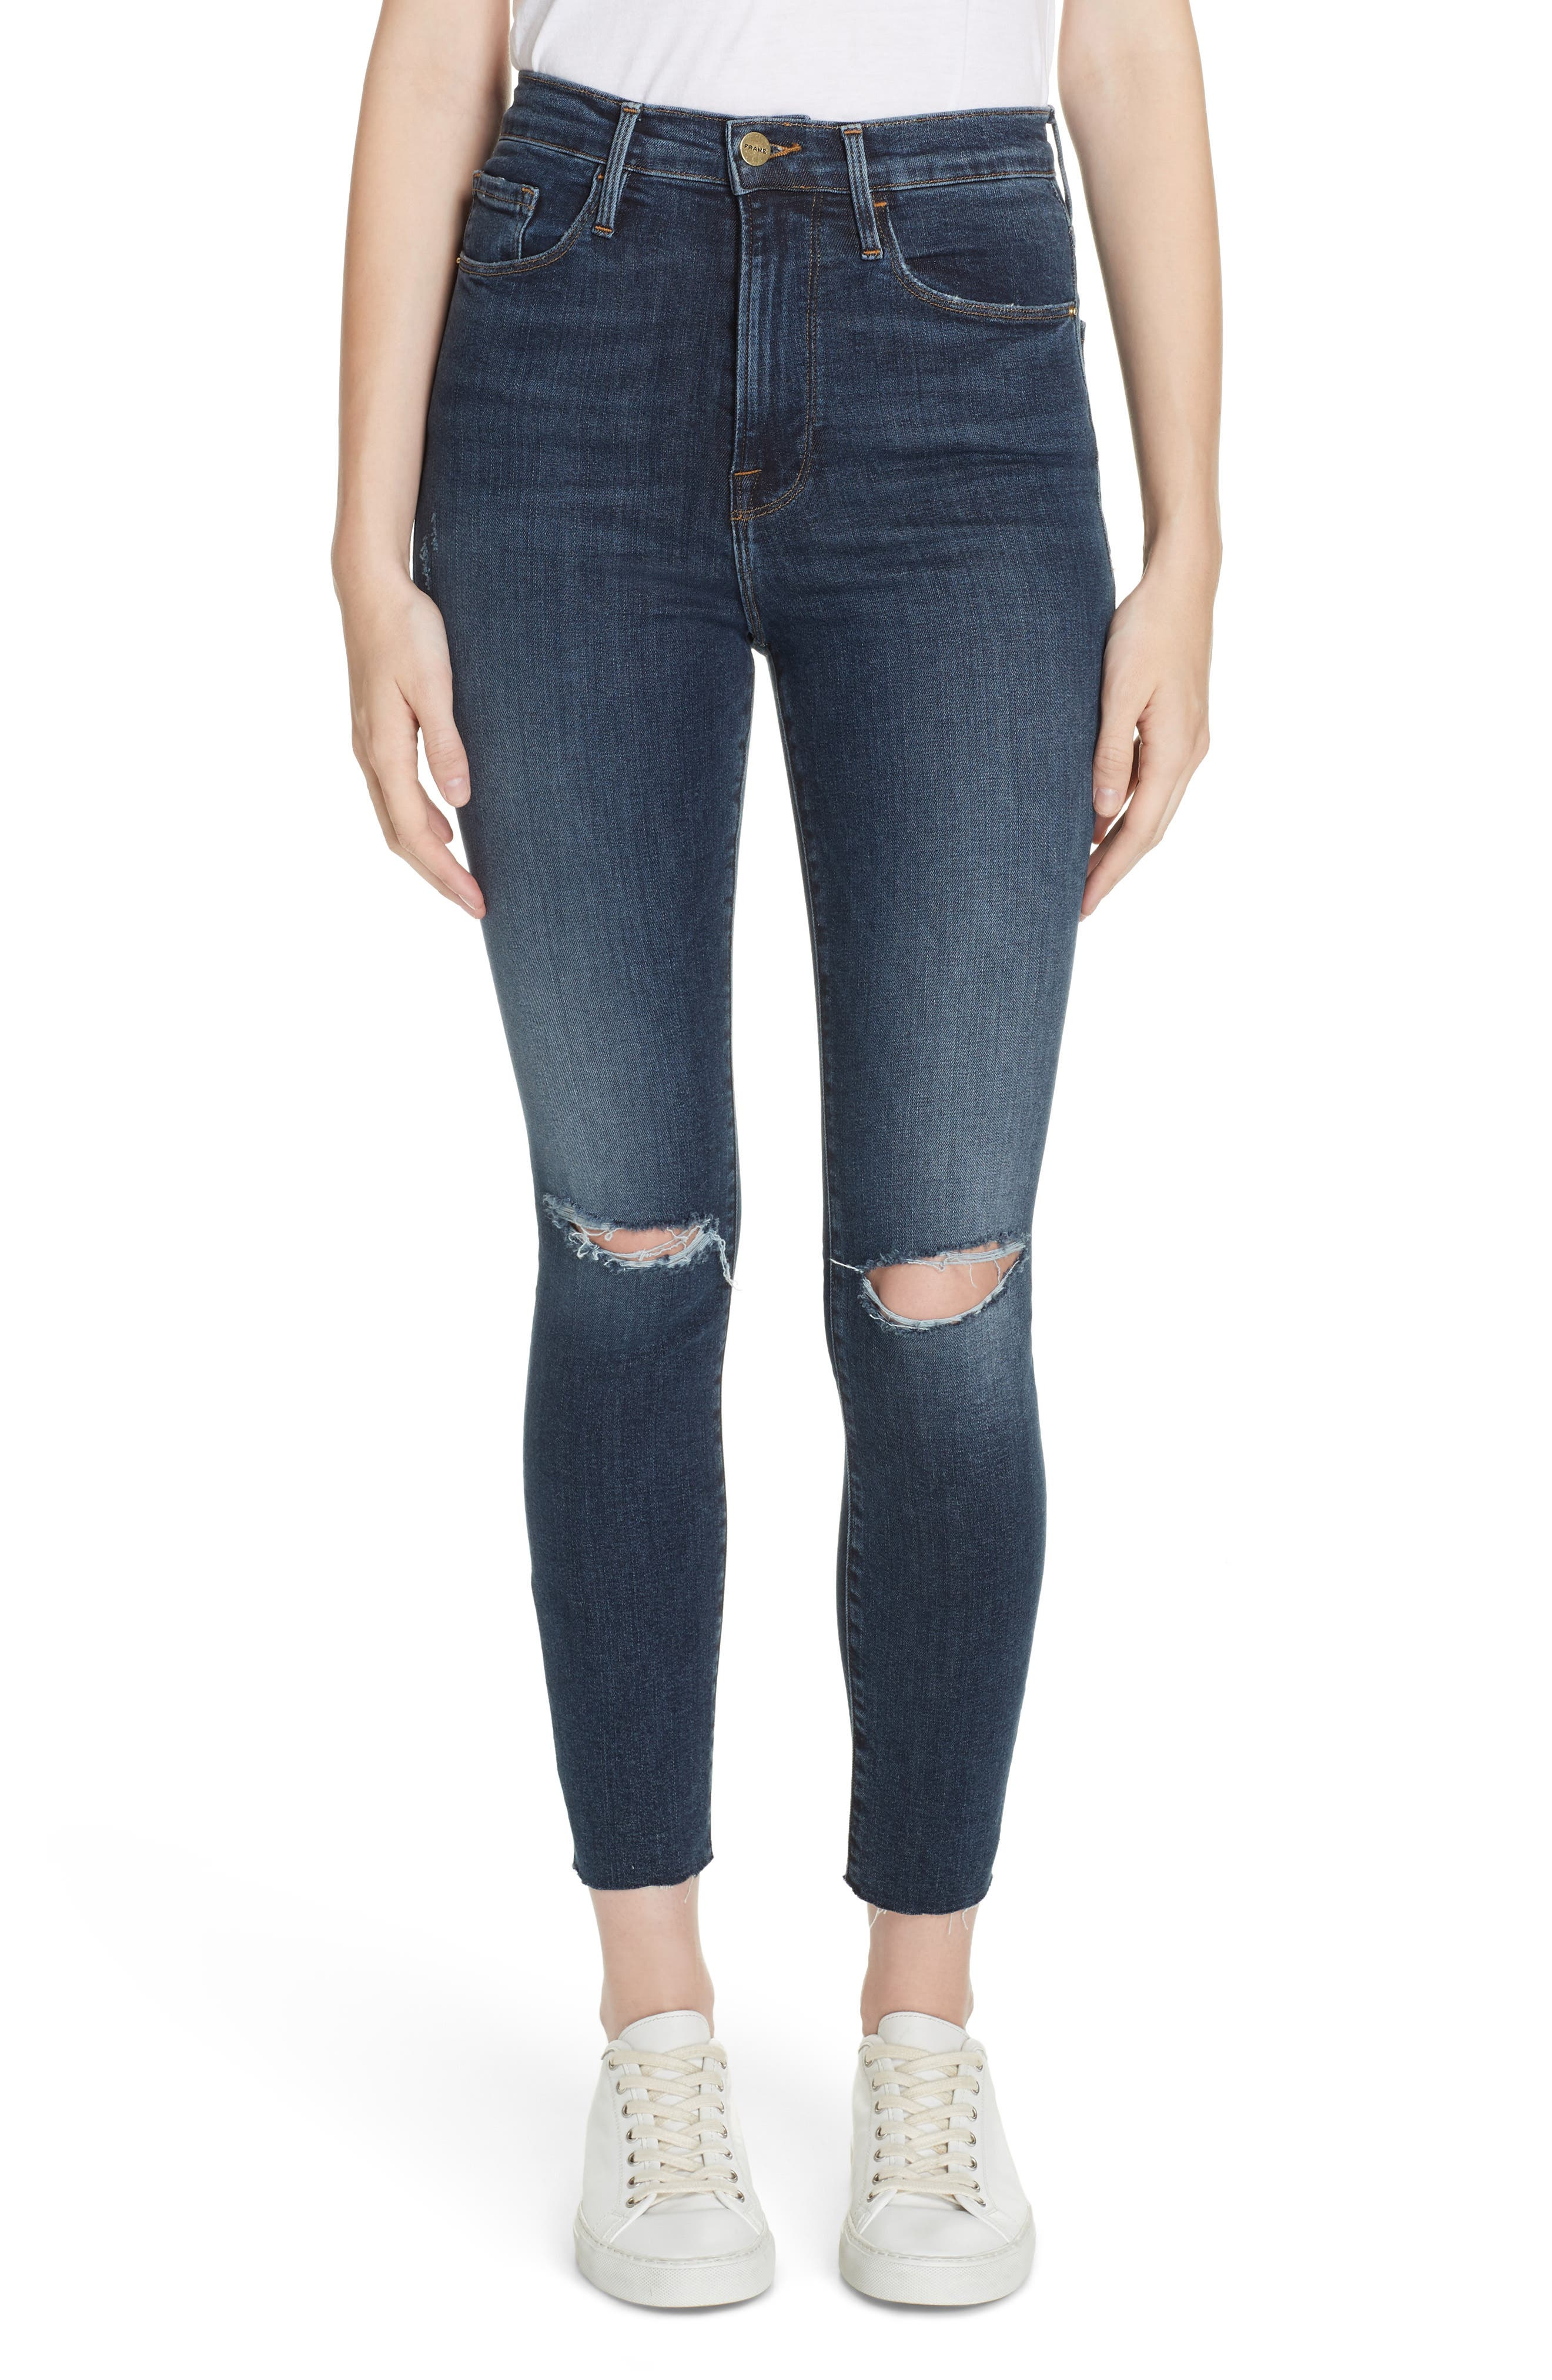 FRAME, Ali Ripped High Waist Crop Cigarette Jeans, Main thumbnail 1, color, BROKEDOWN PALACE